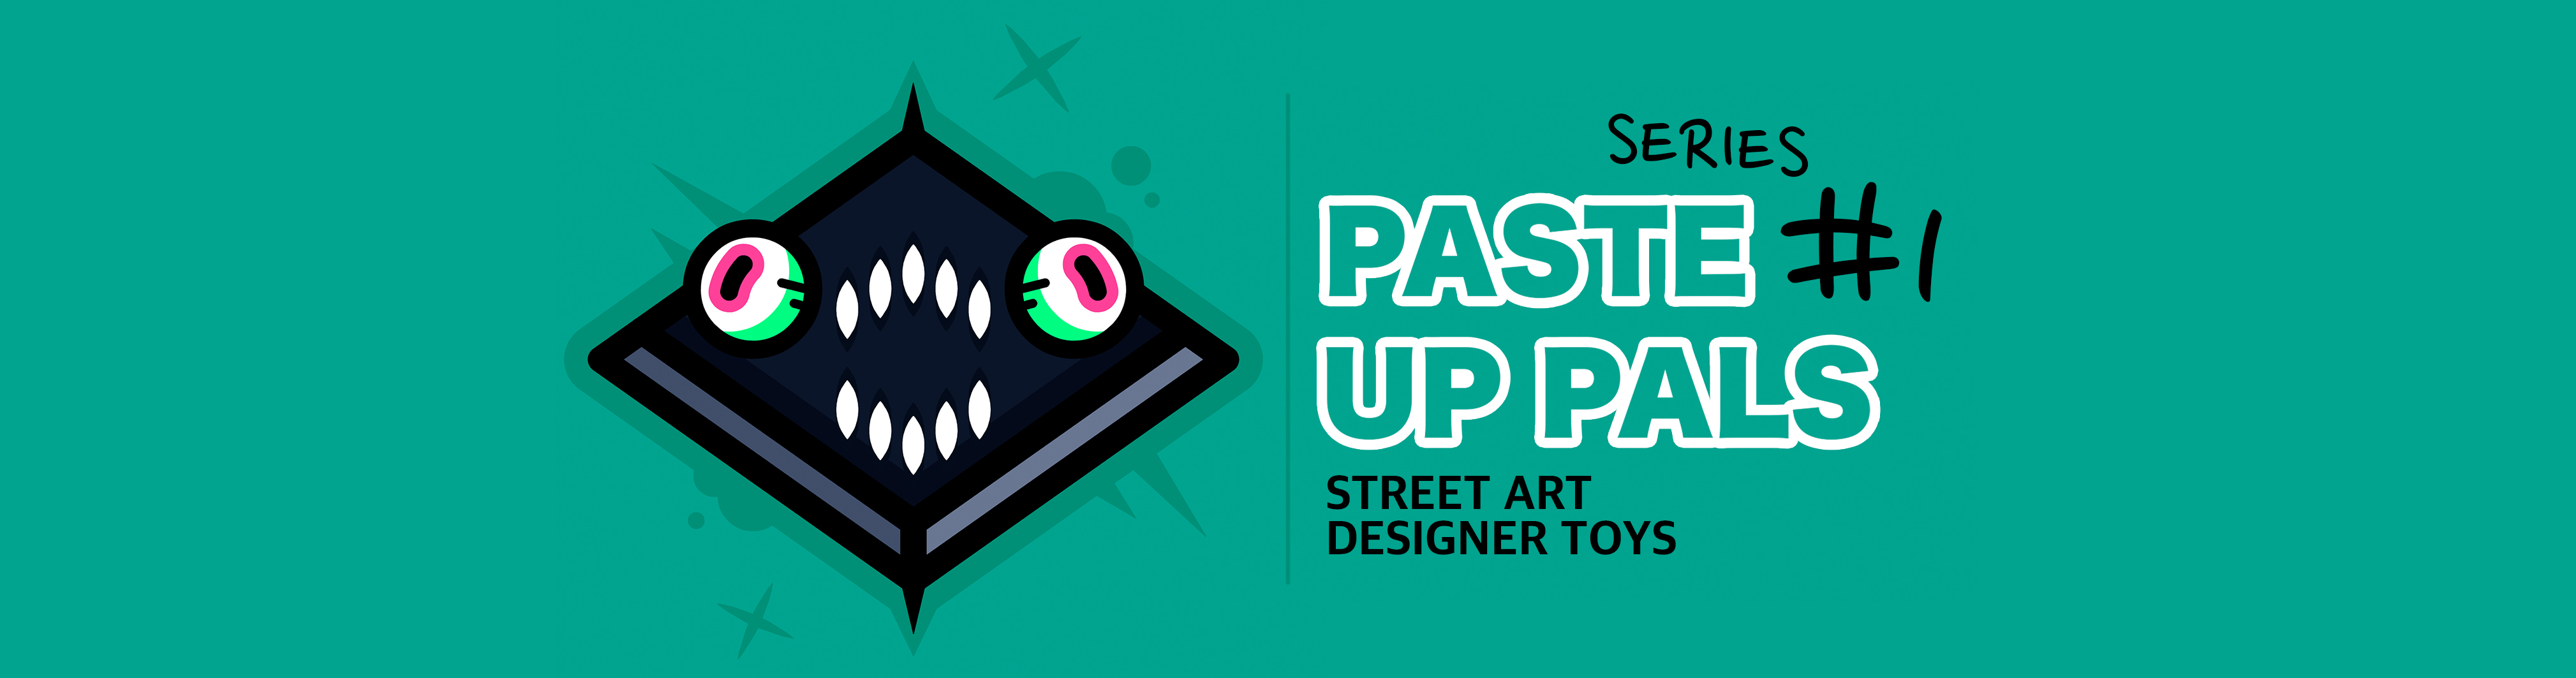 Paste Up Pals: Series One